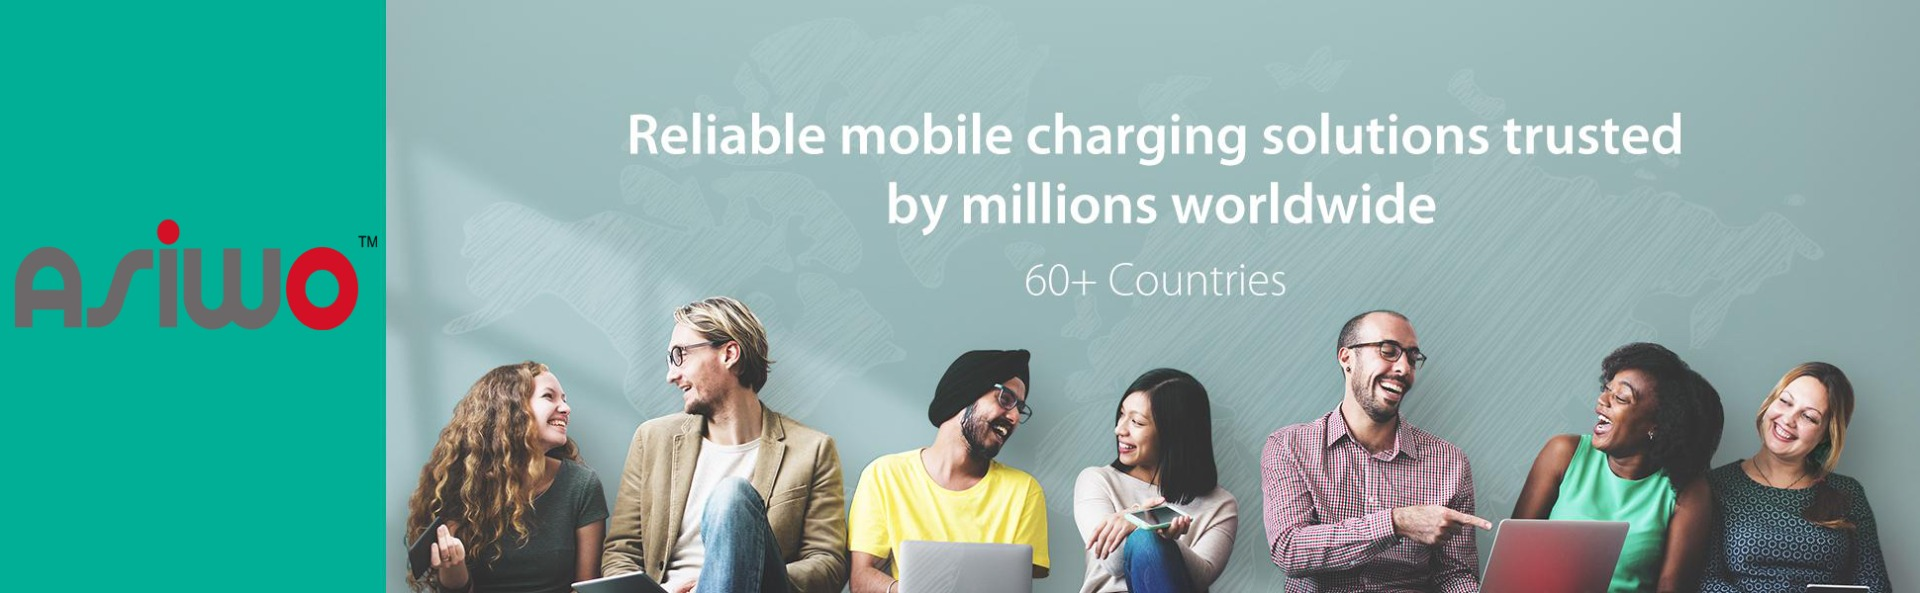 Asiwo mobile charging solutions